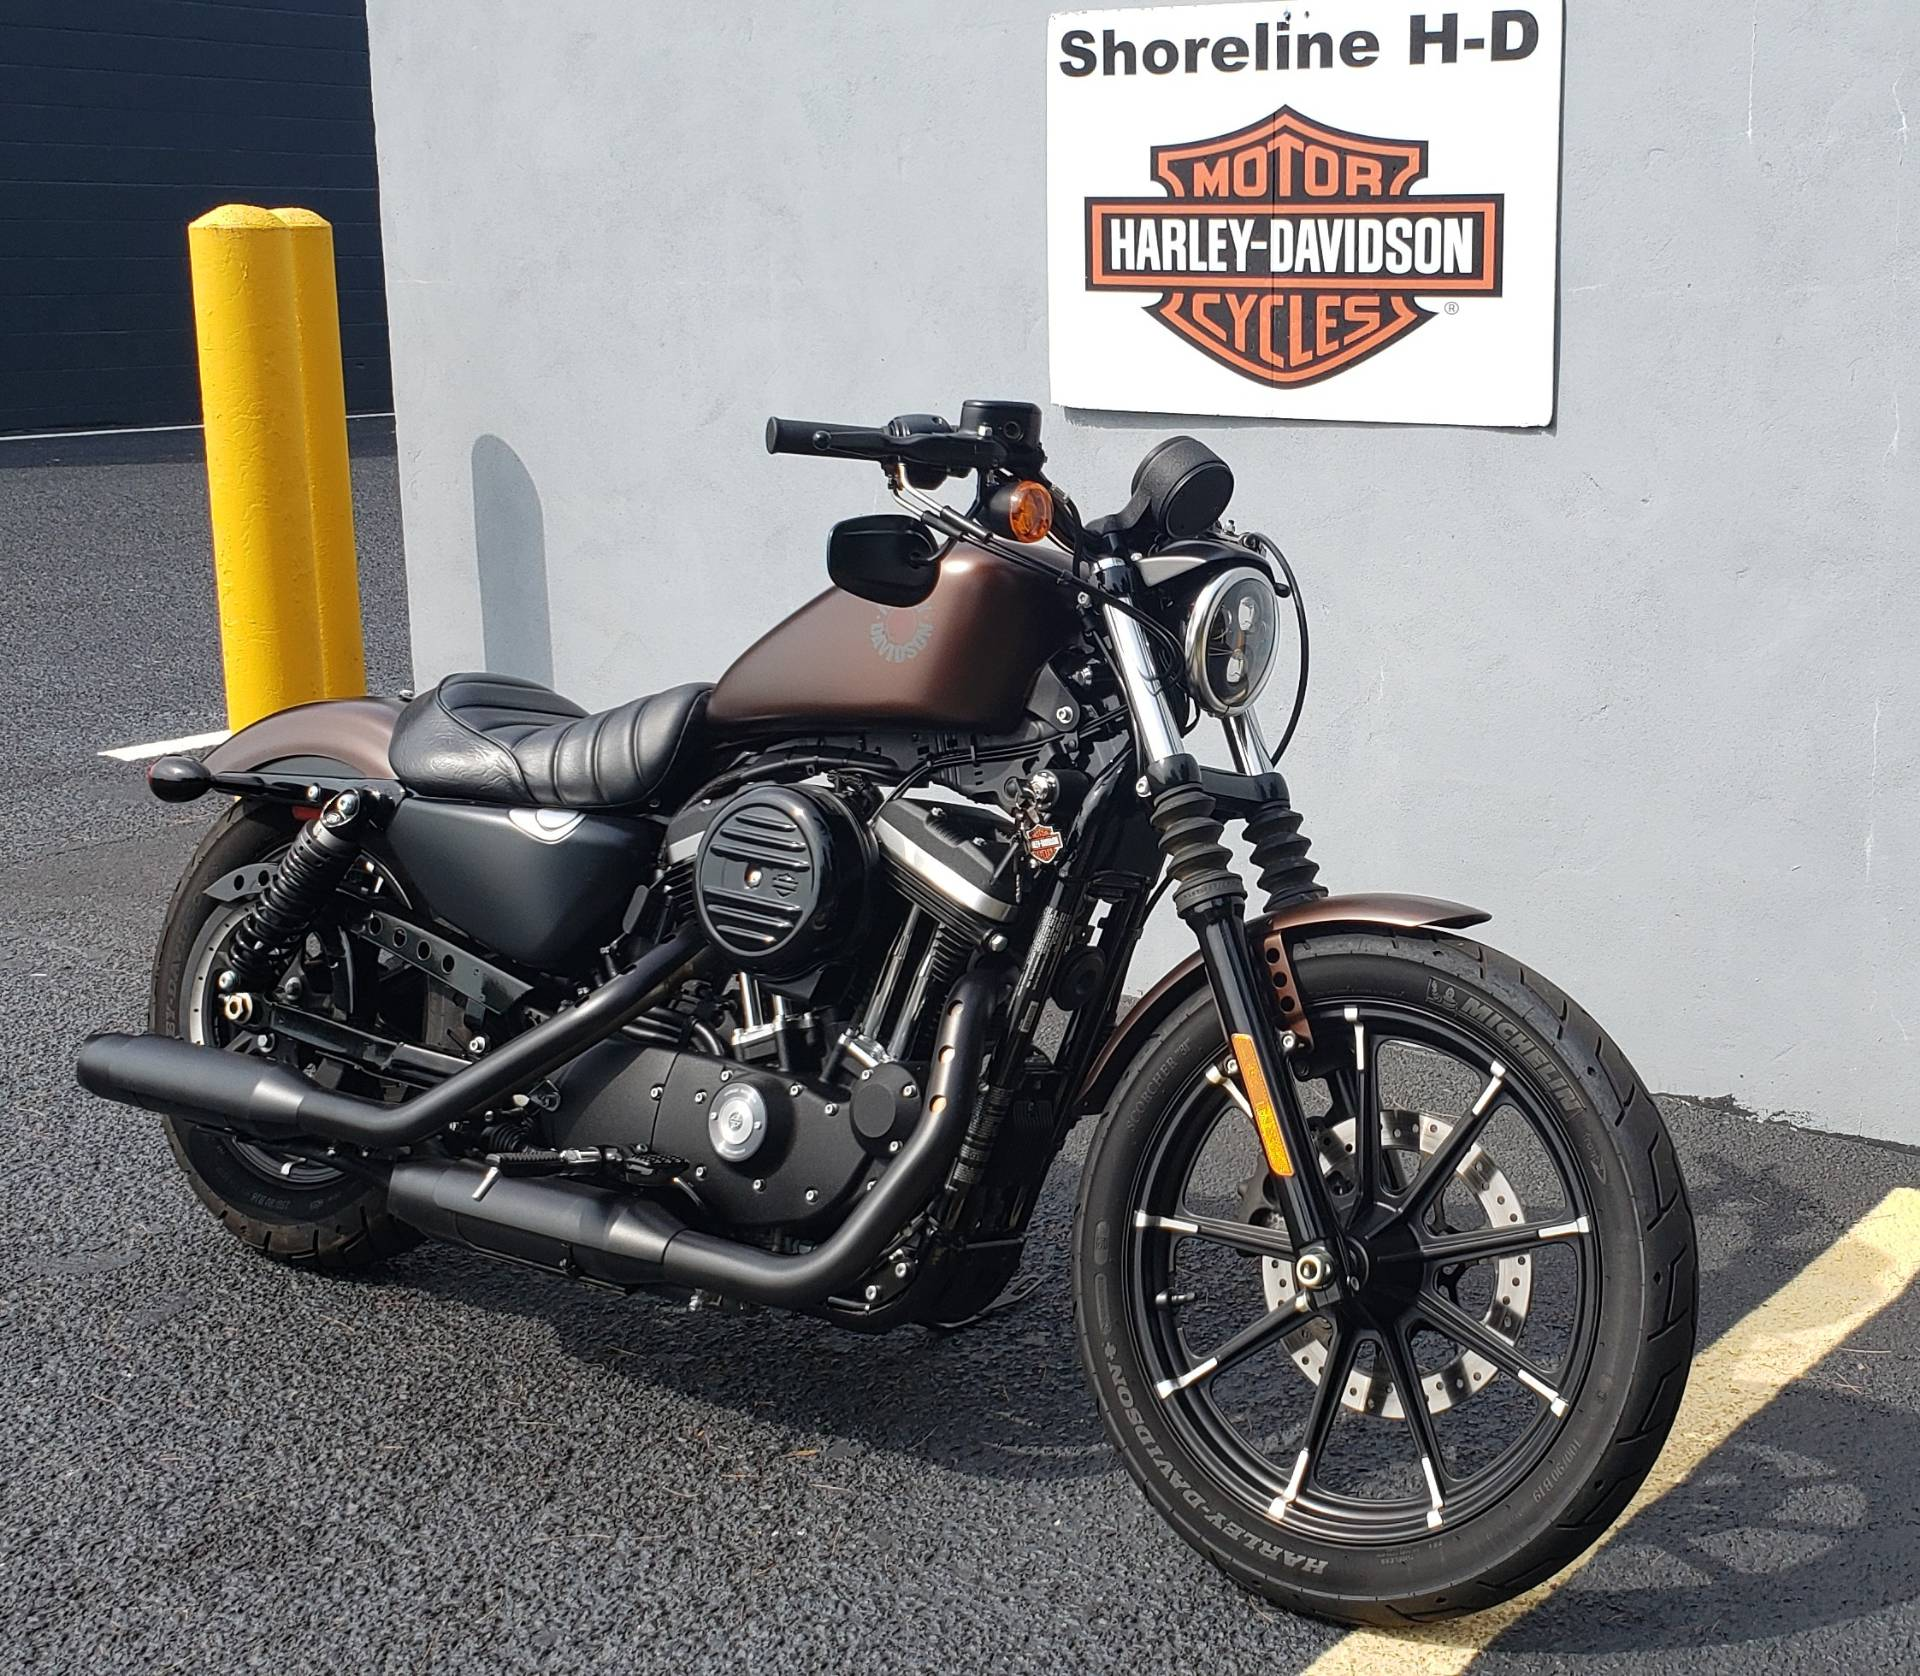 2019 Harley-Davidson Iron 883 in West Long Branch, New Jersey - Photo 3